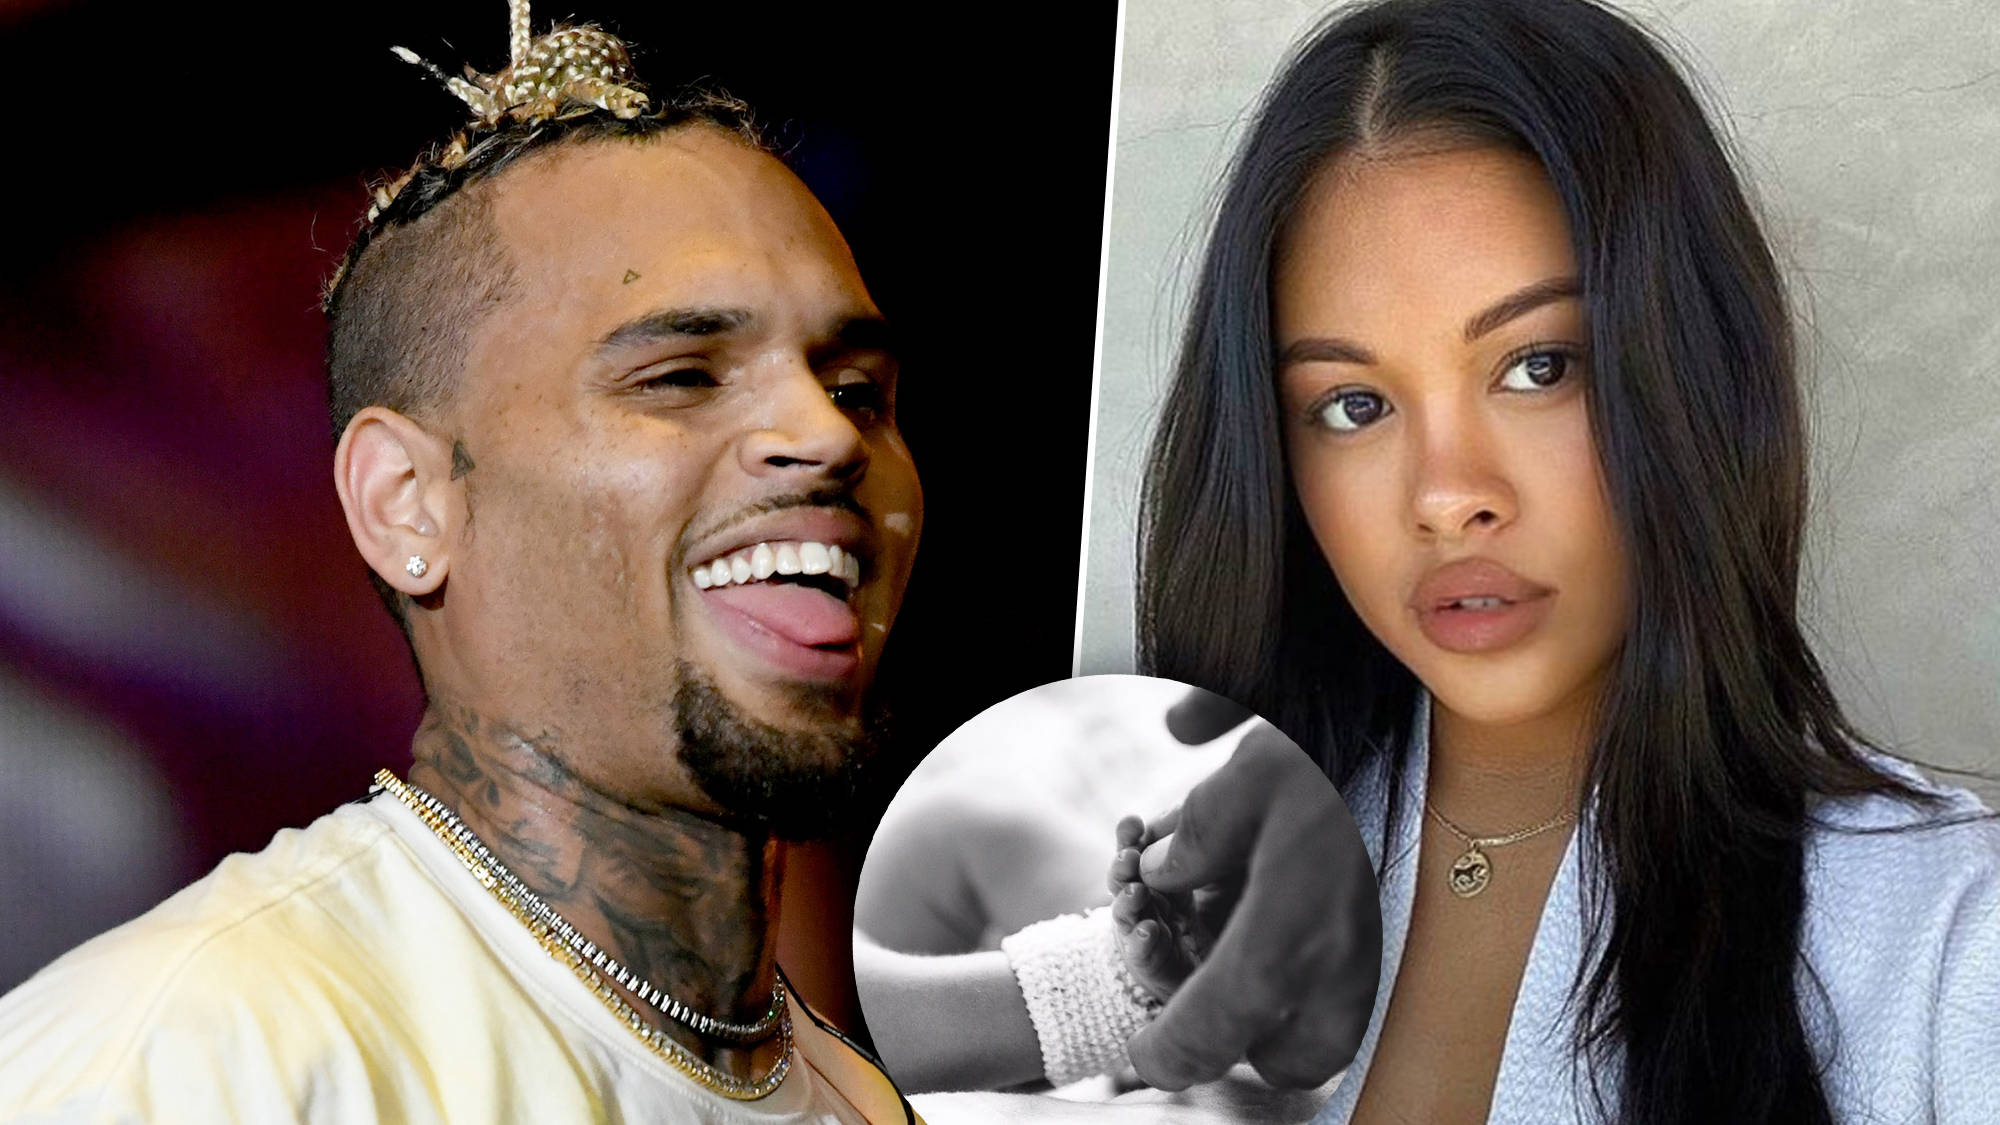 Chris Brown Shares New Photos of His Mini-Me Baby Son Aeko